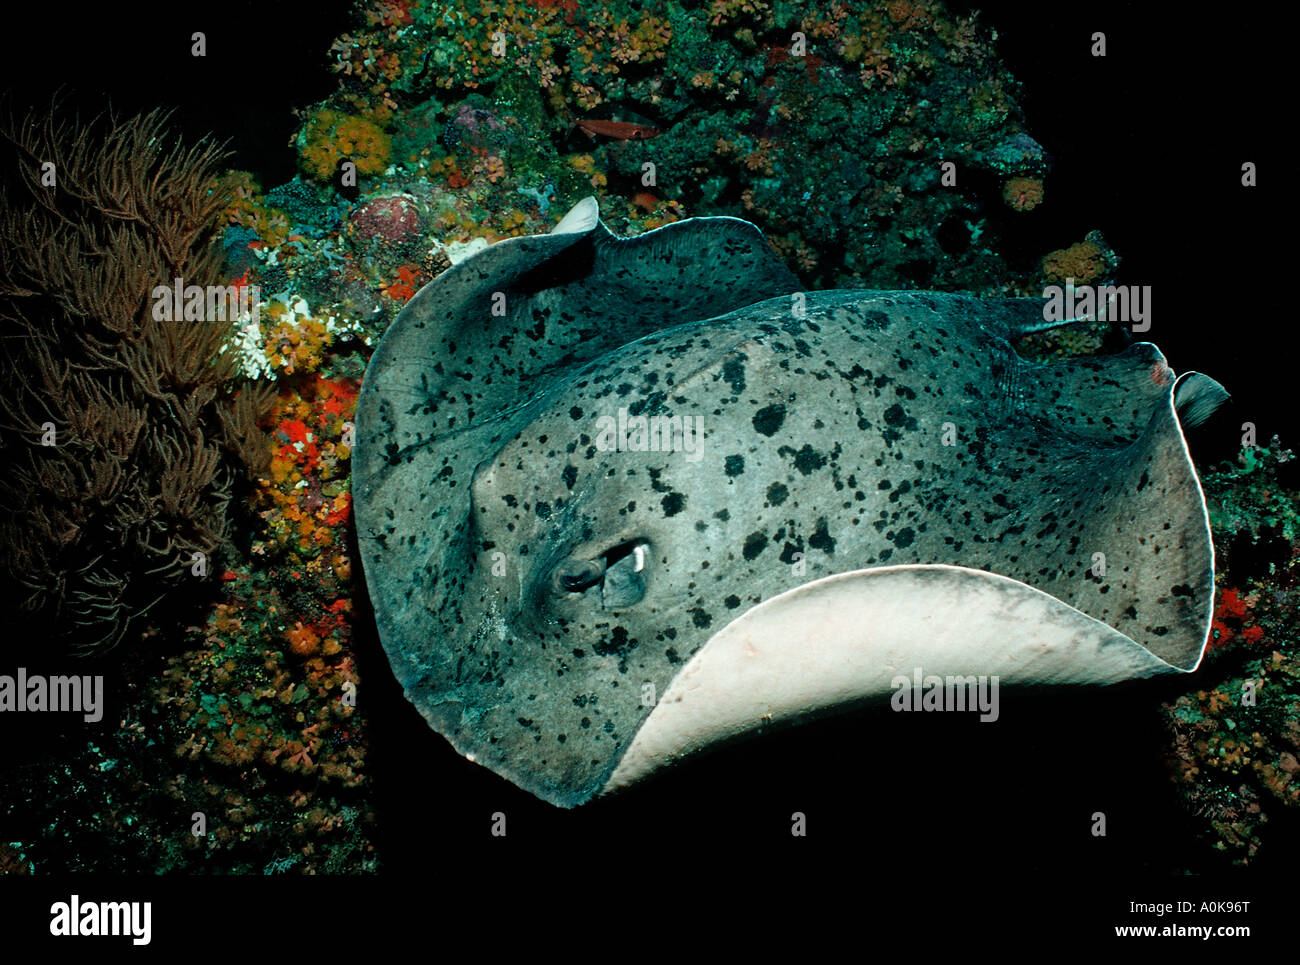 Black spotted stingray Taeniura meyeni Indian ocean Maldives Islands - Stock Image